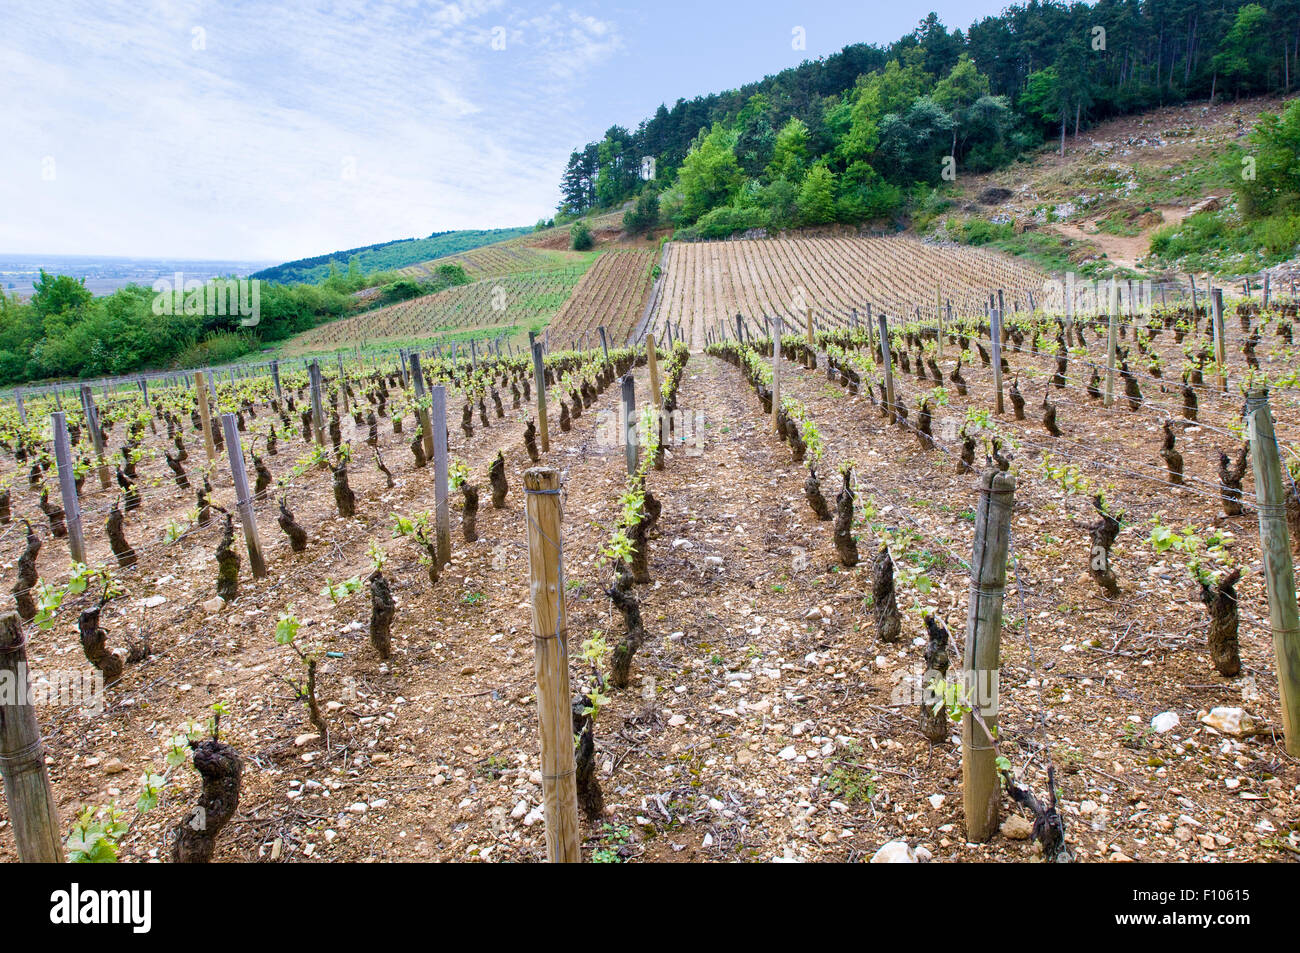 The upper slopes of the Les Cazetiers vineyards in Gevrey-Chambertin in Burgundy France - Stock Image